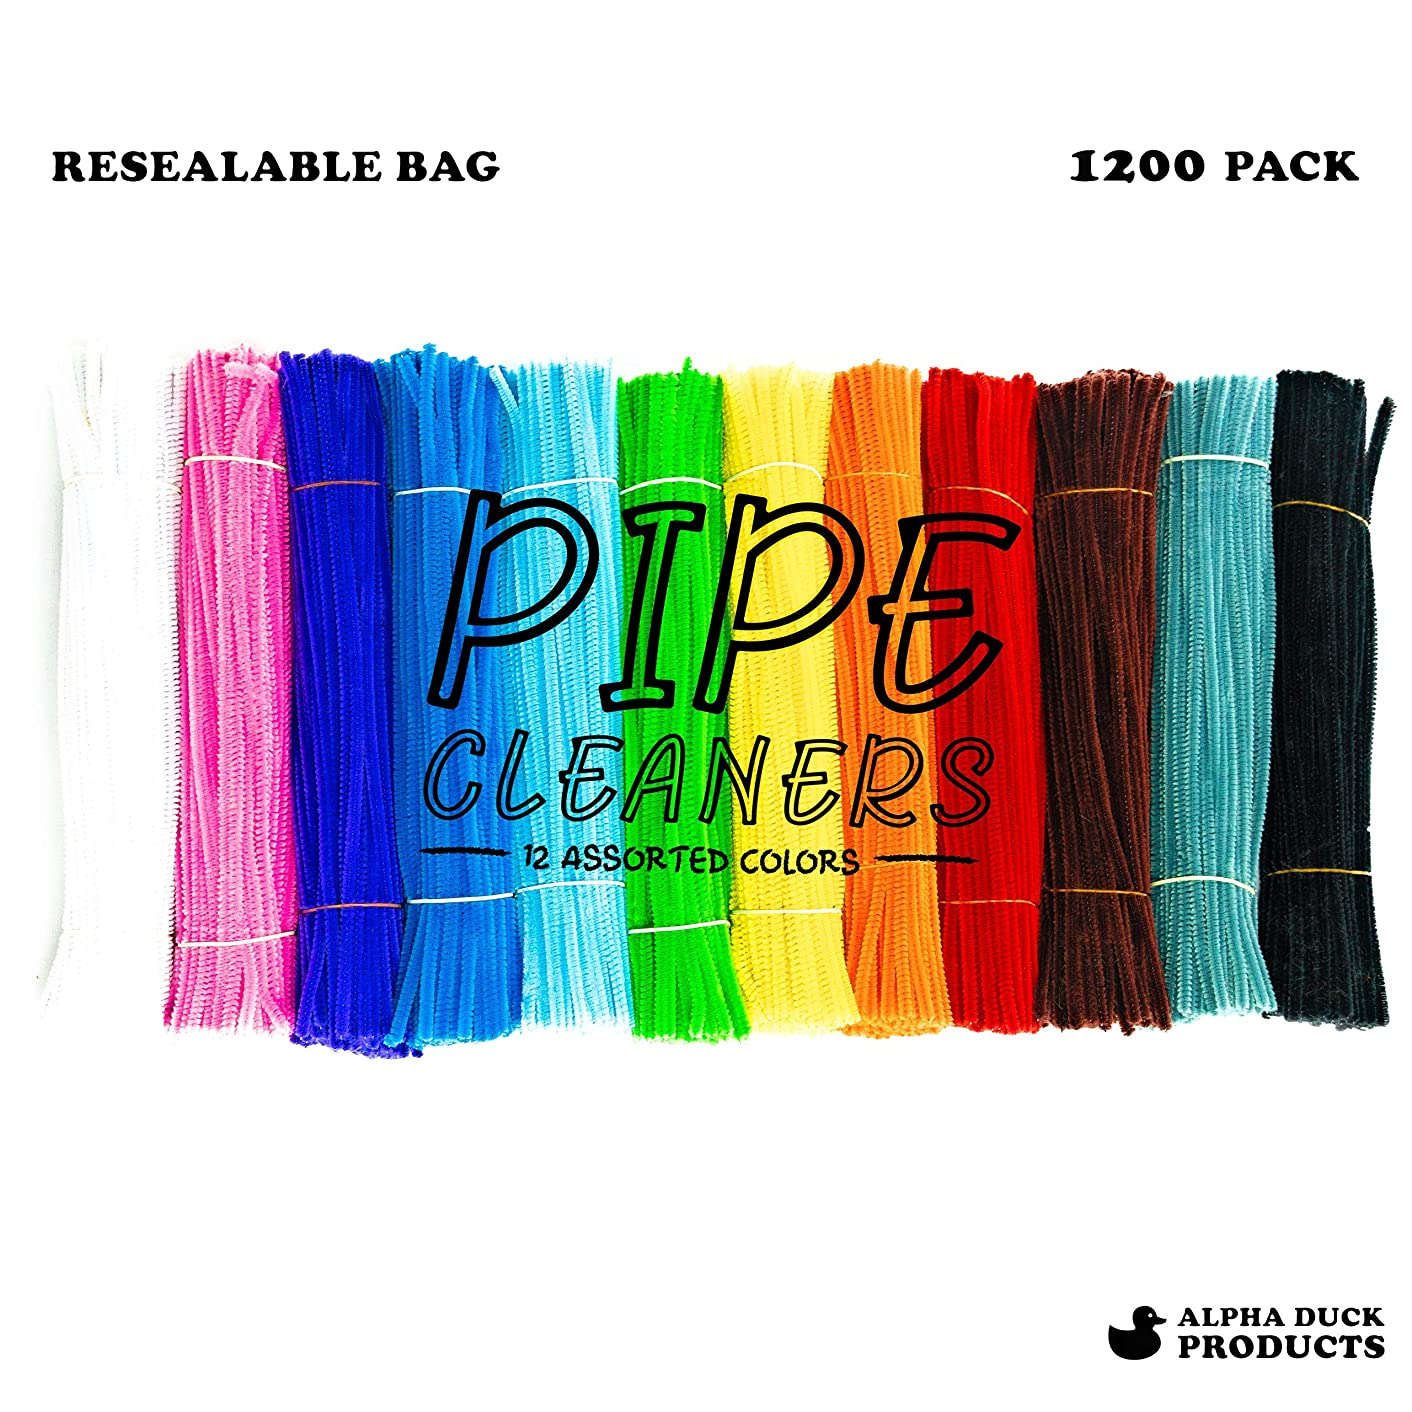 1,200 Pipe Cleaners in 12 Assorted Colors, Value Pack of Chenille Stems for DIY Arts and Craft Projects and Decorations